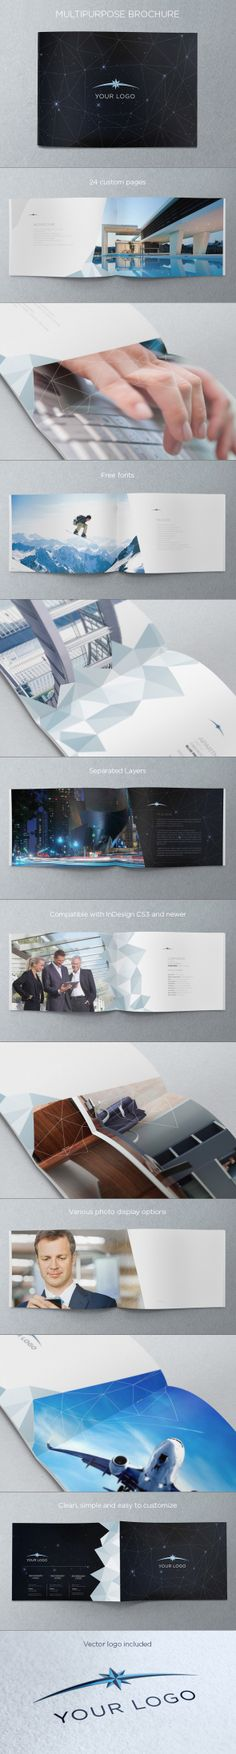 Multipurpose Brochure. Download here: http://graphicriver.net/item/multipurpose-brochure/4541485 #design #brochure